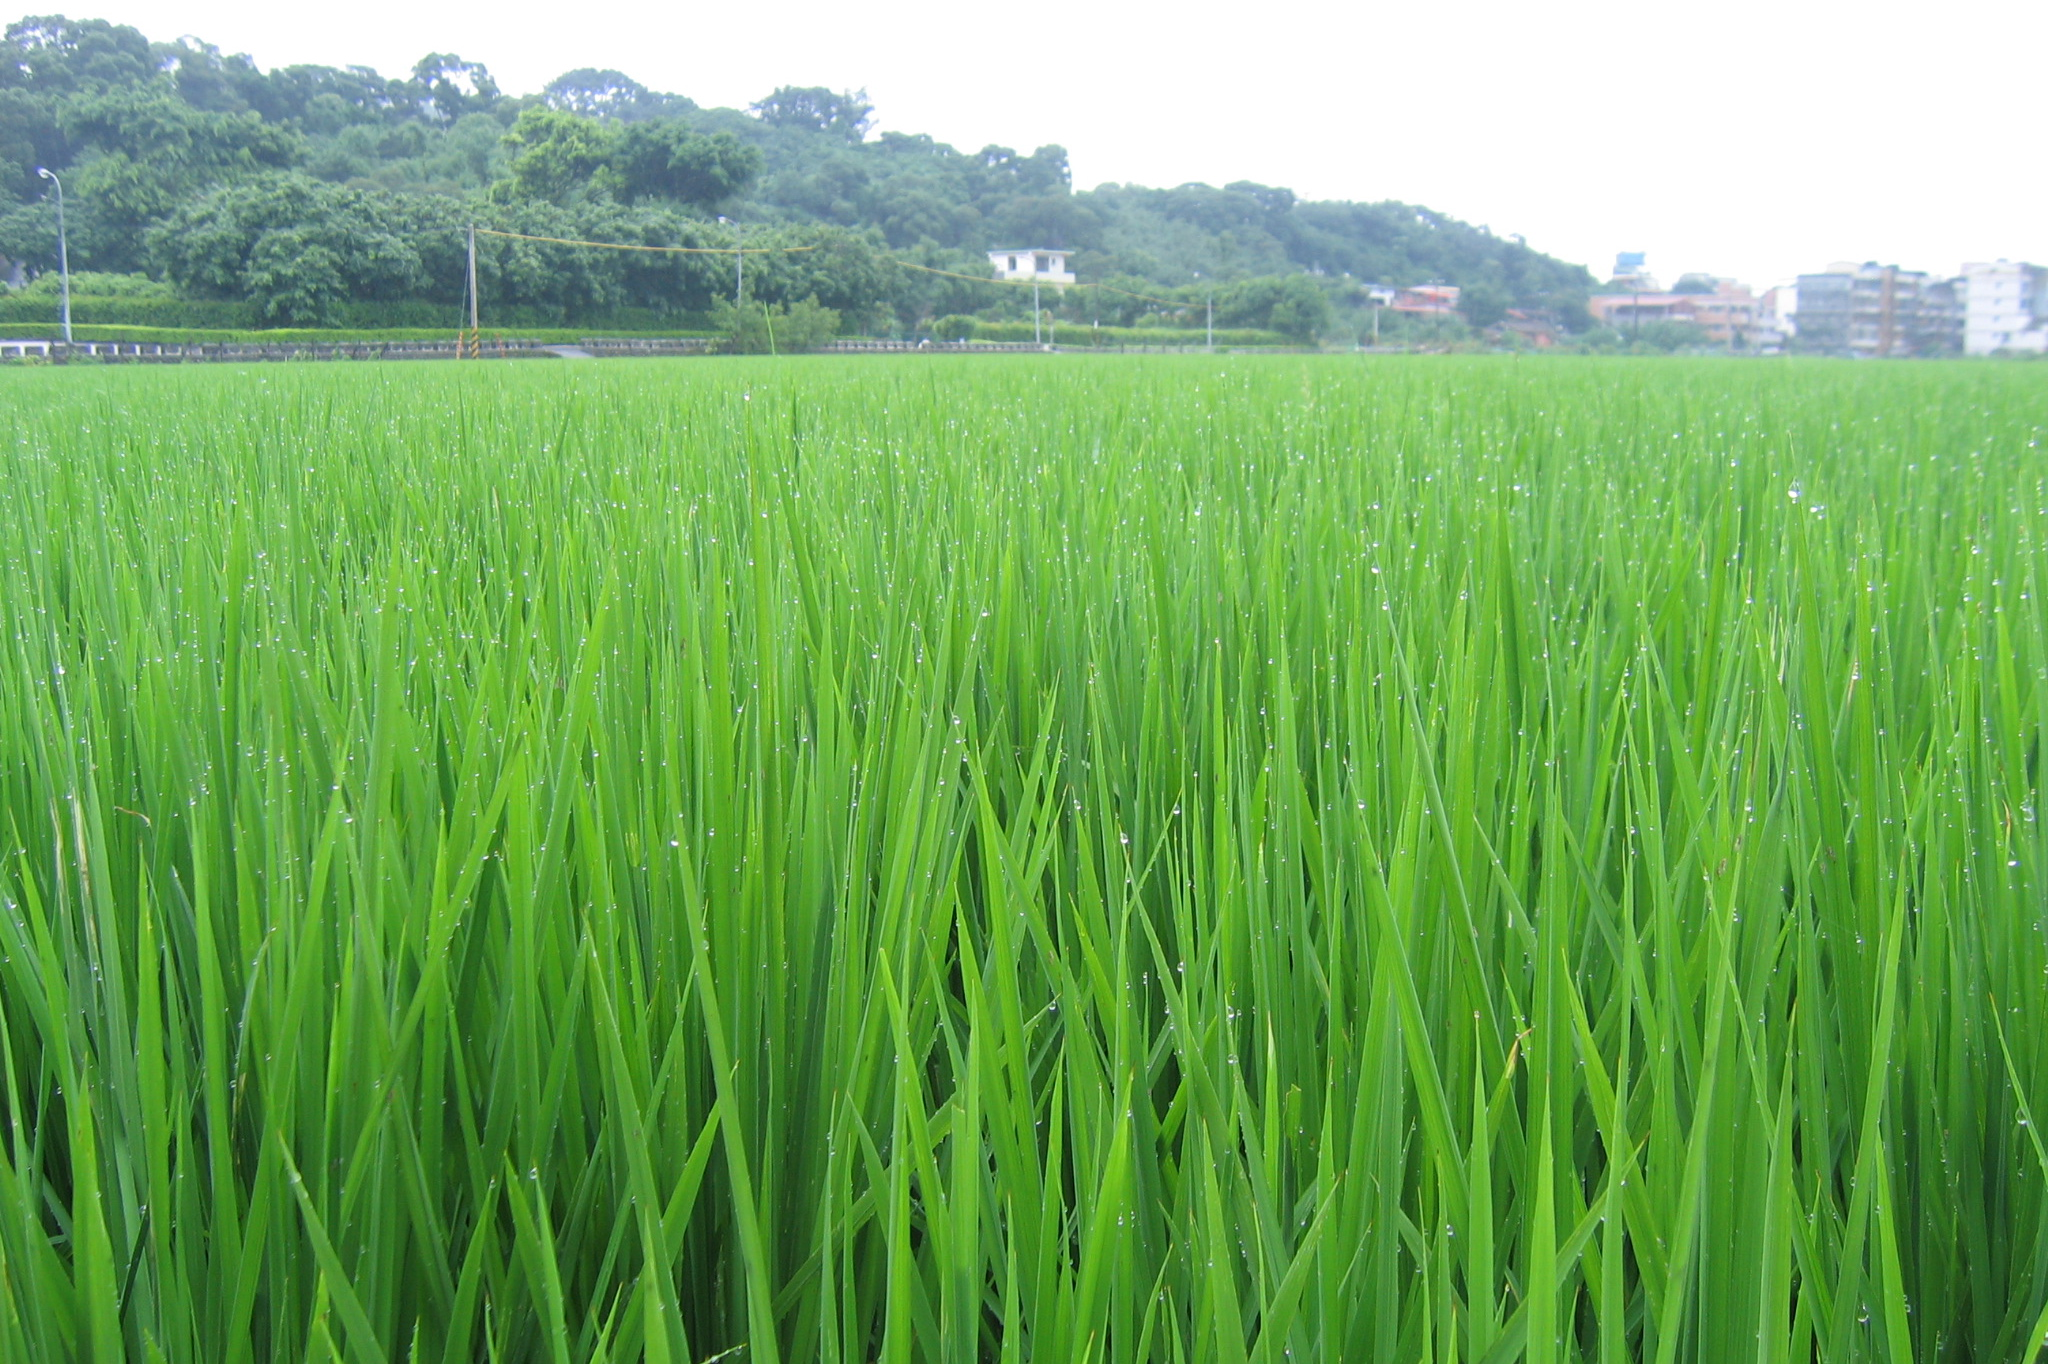 Agriculture Rice Planting These Young Rice Plants Are